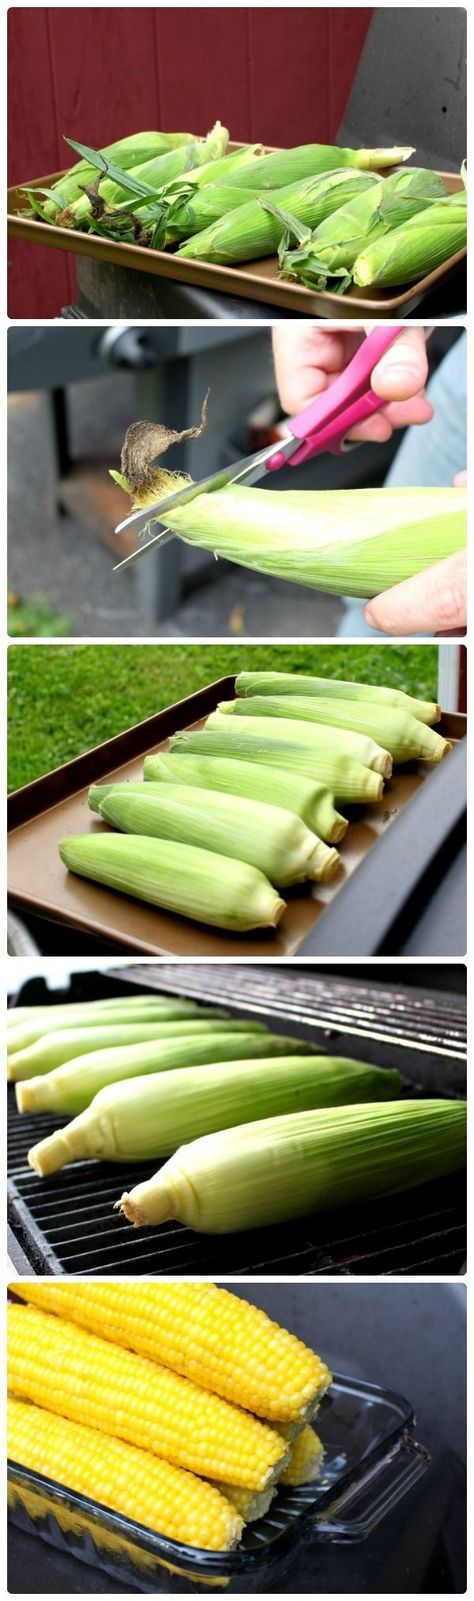 Perfect Grilled Sweet Corn is a must-have side during th summer months! Time to get your grilling on!